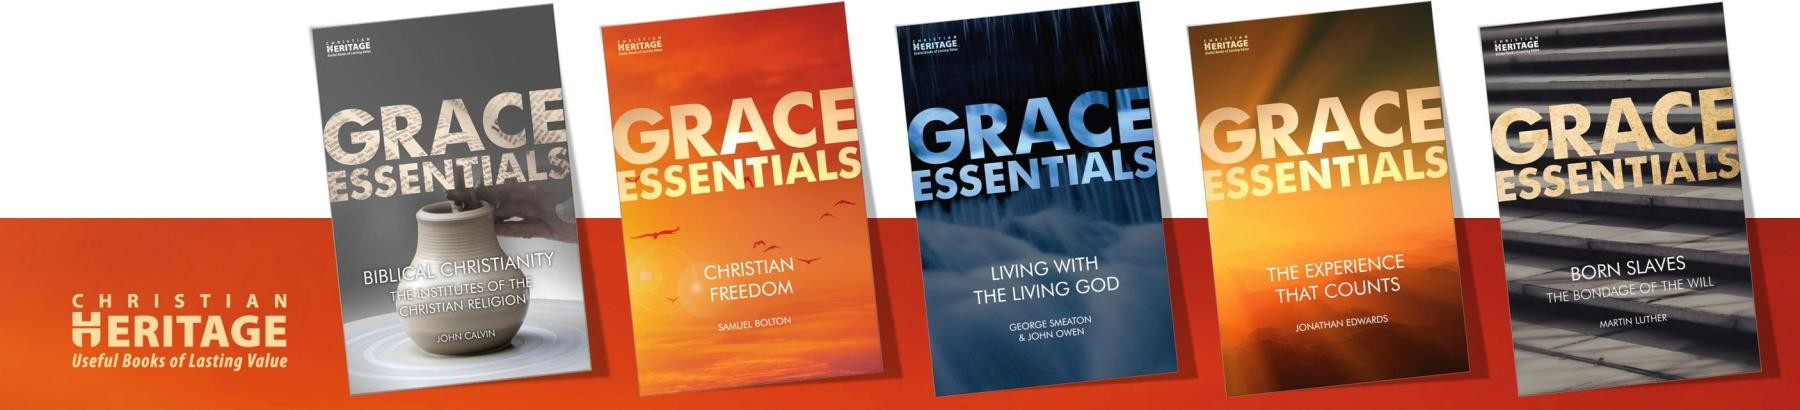 The Grace Essentials series